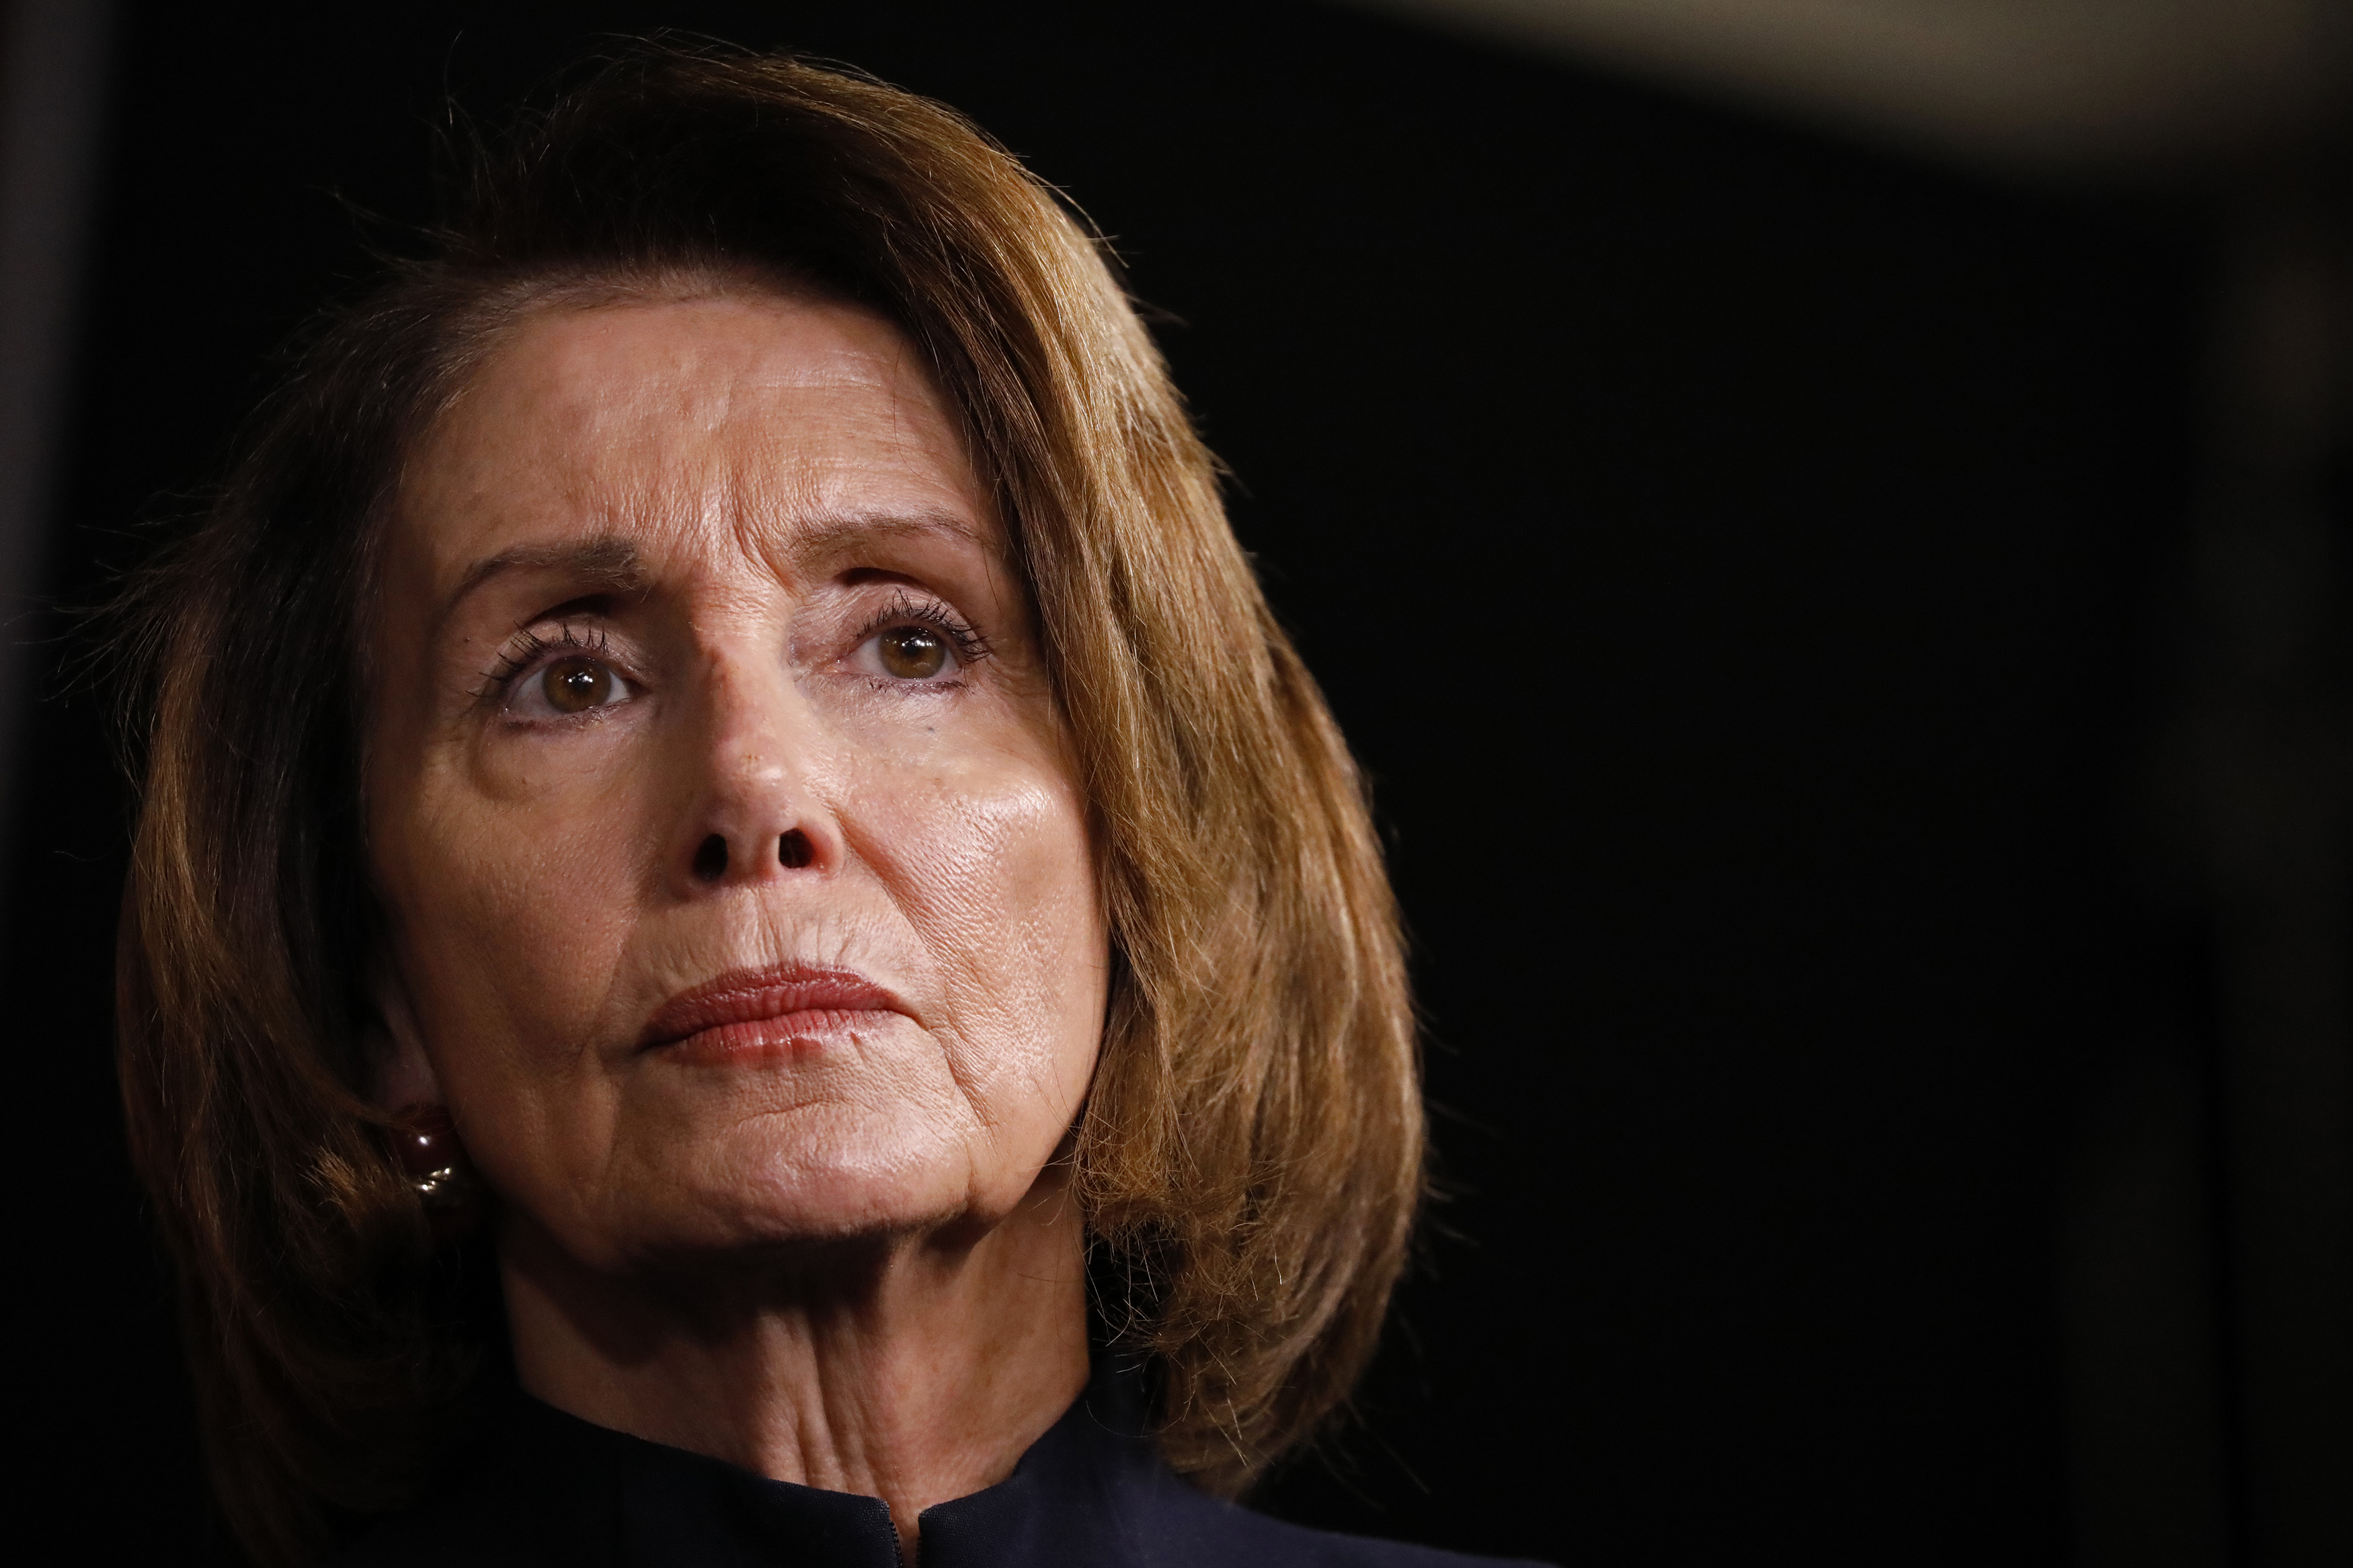 WASHINGTON, DC - FEBRUARY 15: House Minority Leader Nancy Pelosi speaks at her weekly press conference on Capitol Hill on February 15, 2018 in Washington, DC. Pelsoi called on congress to act in the wake of the recent school shooting in Parkland, FL. (Photo by Aaron P. Bernstein/Getty Images)